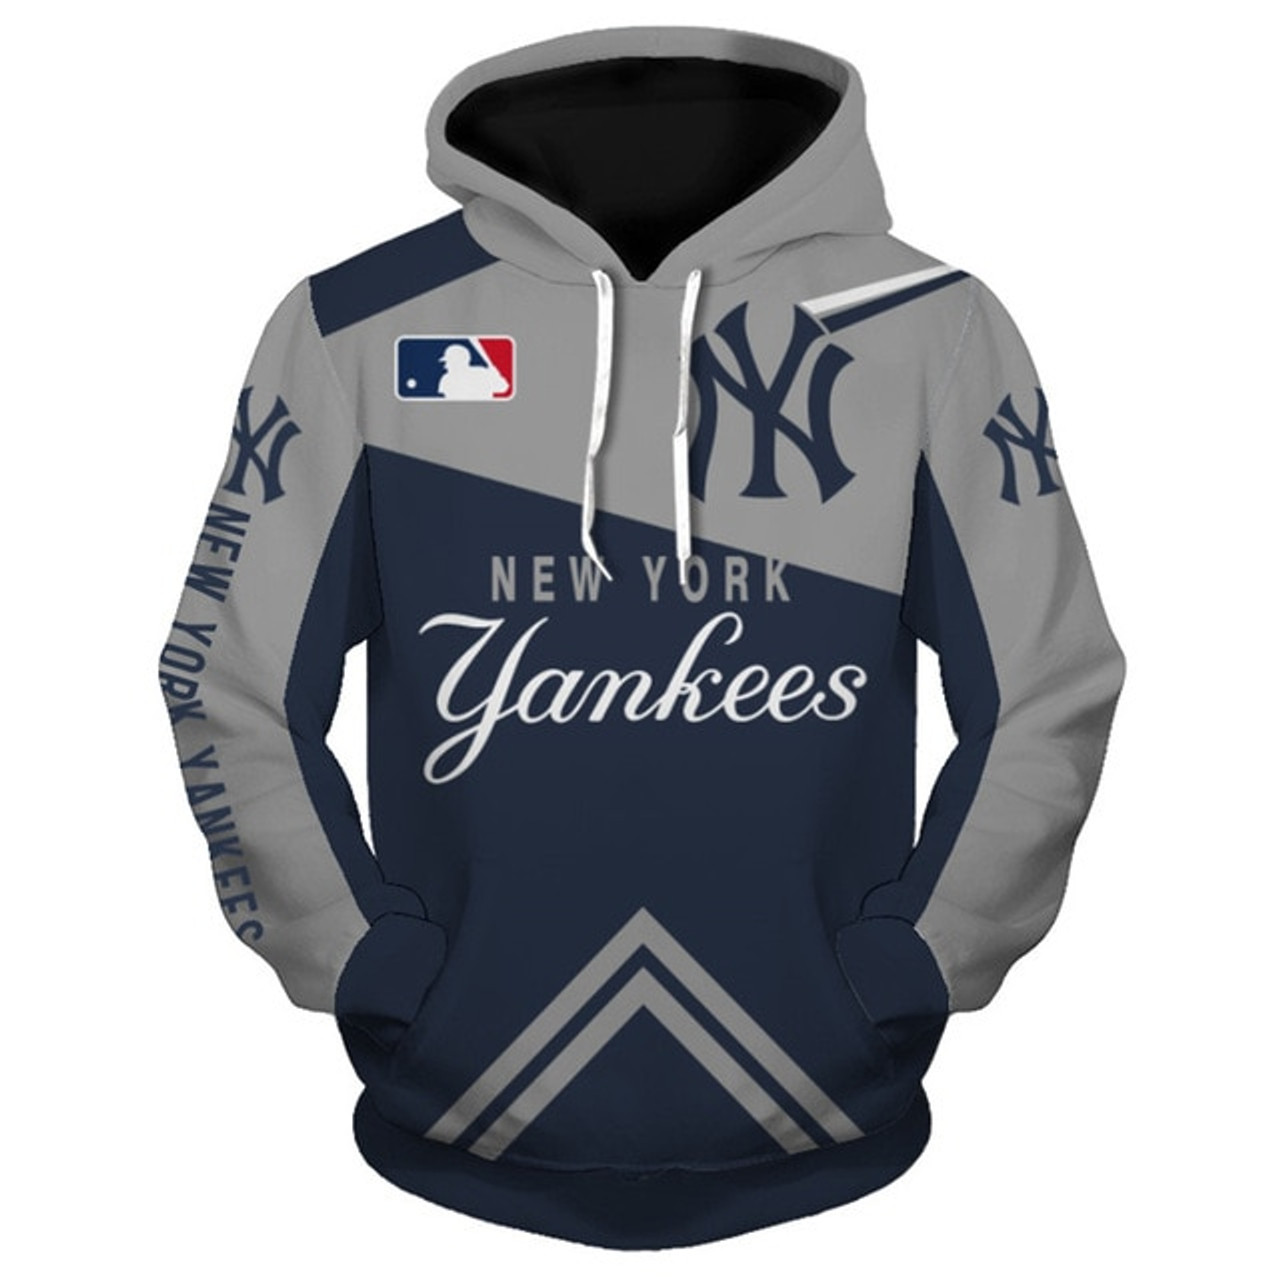 arrives 41e0e afd94 **(OFFICIAL-M.L.B.  NEW-YORK-YANKEES-TEAM-PULLOVER-HOODIES/NICE-CUSTOM-DETAILED-3D-GRAPHIC-PRINTED/PREMIUM-ALL-OVER-DOUBLE-SIDED-PRINTING/OFFICIAL-YANK...